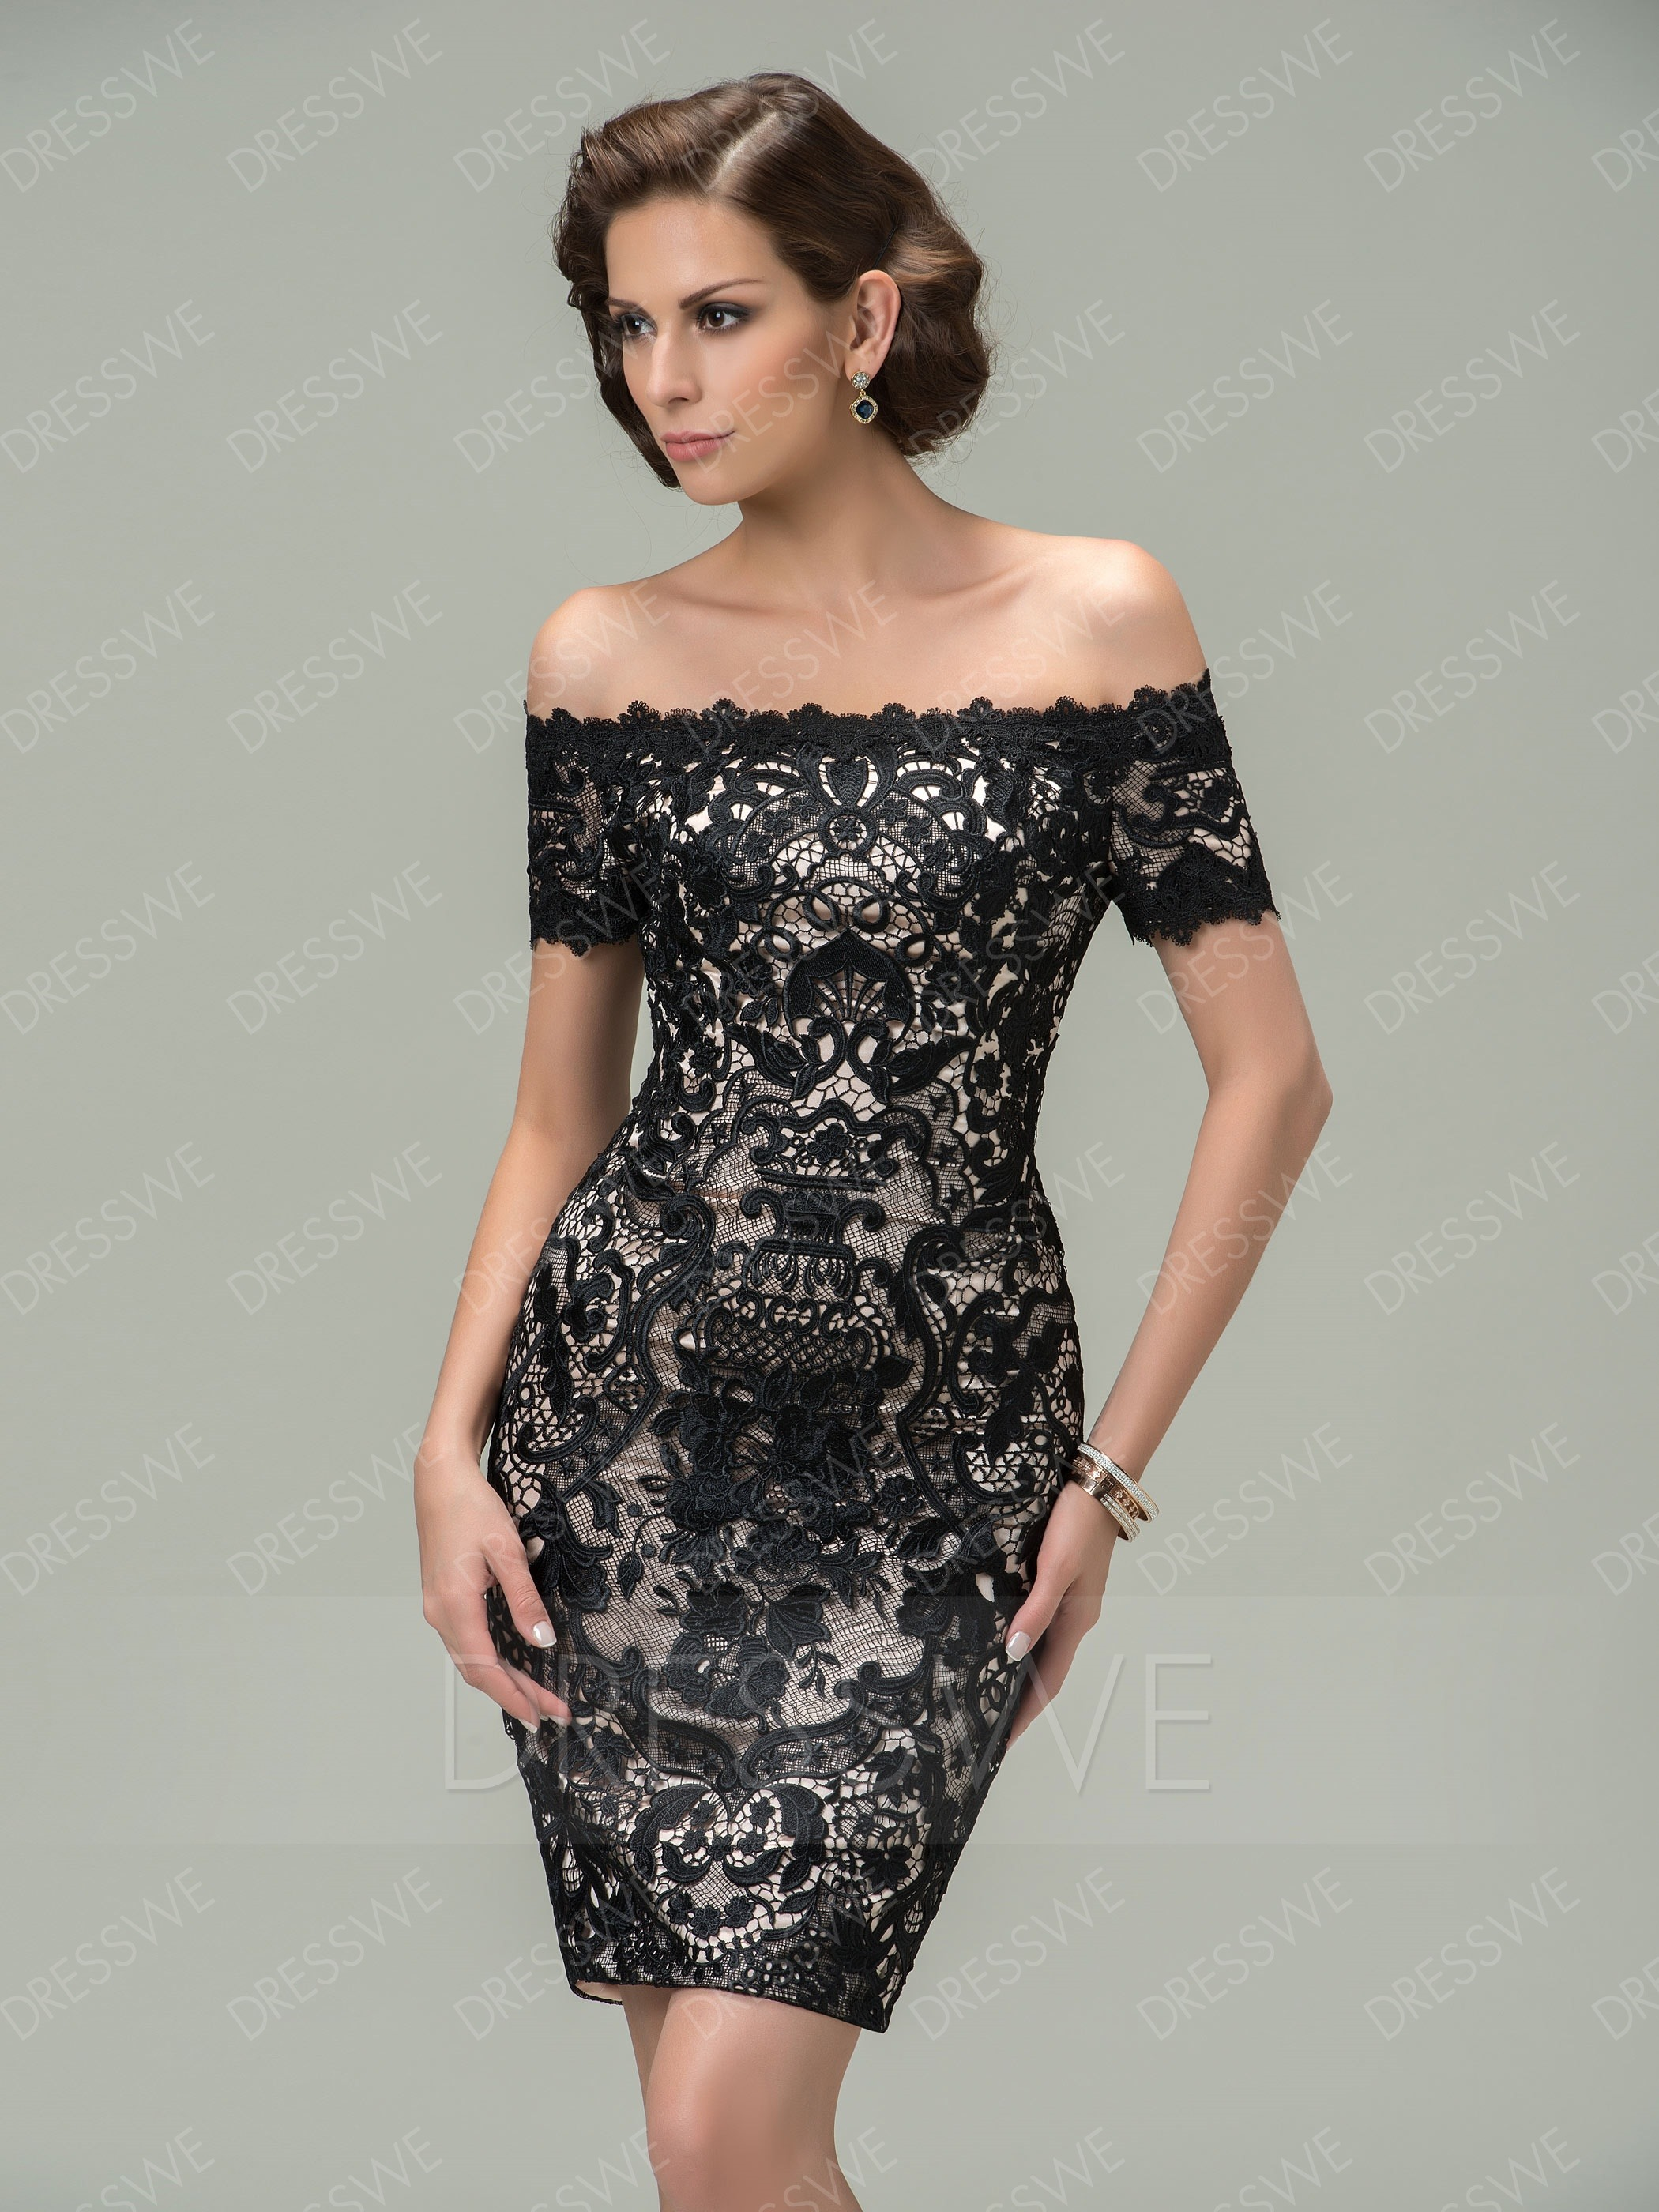 cocktail dress picture: dresswe.com supplies sheath off-the-shoulder lace short cocktail  dress cocktail dresses ... HFZOWGI